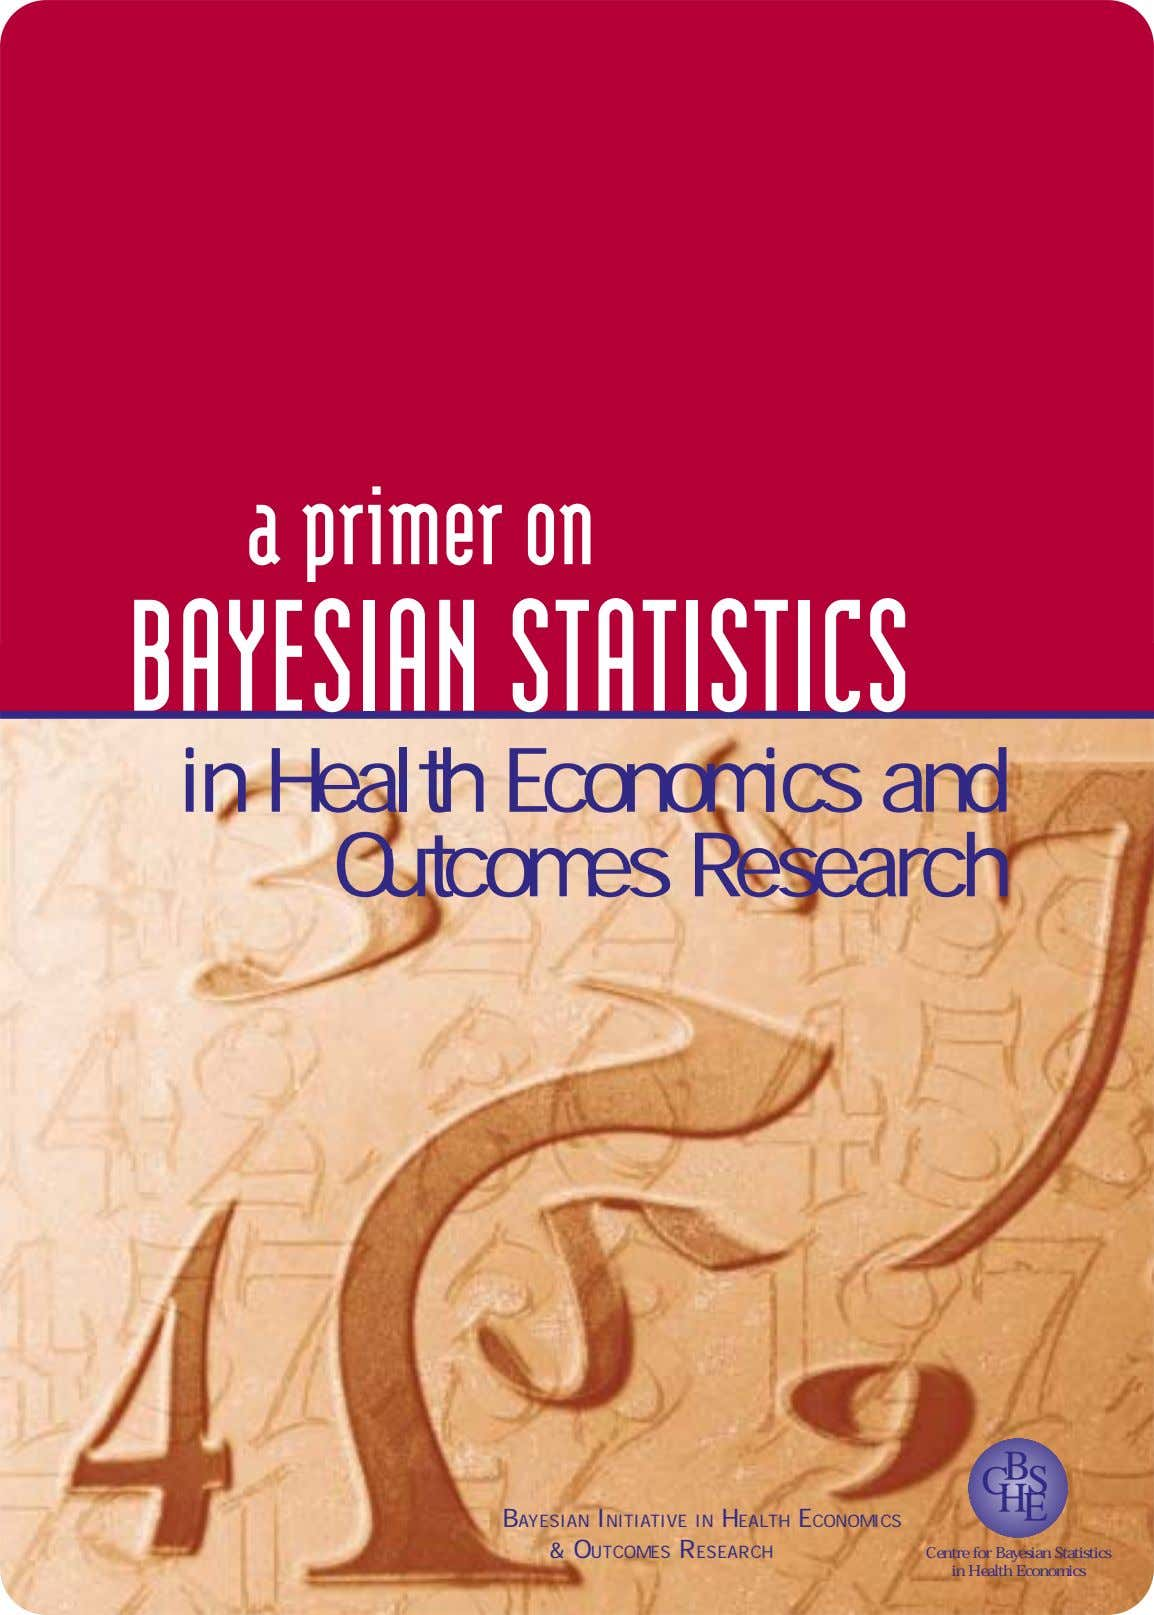 a primer on BAYESIAN STATISTICS in Health Economics and Outcomes Research B C S H